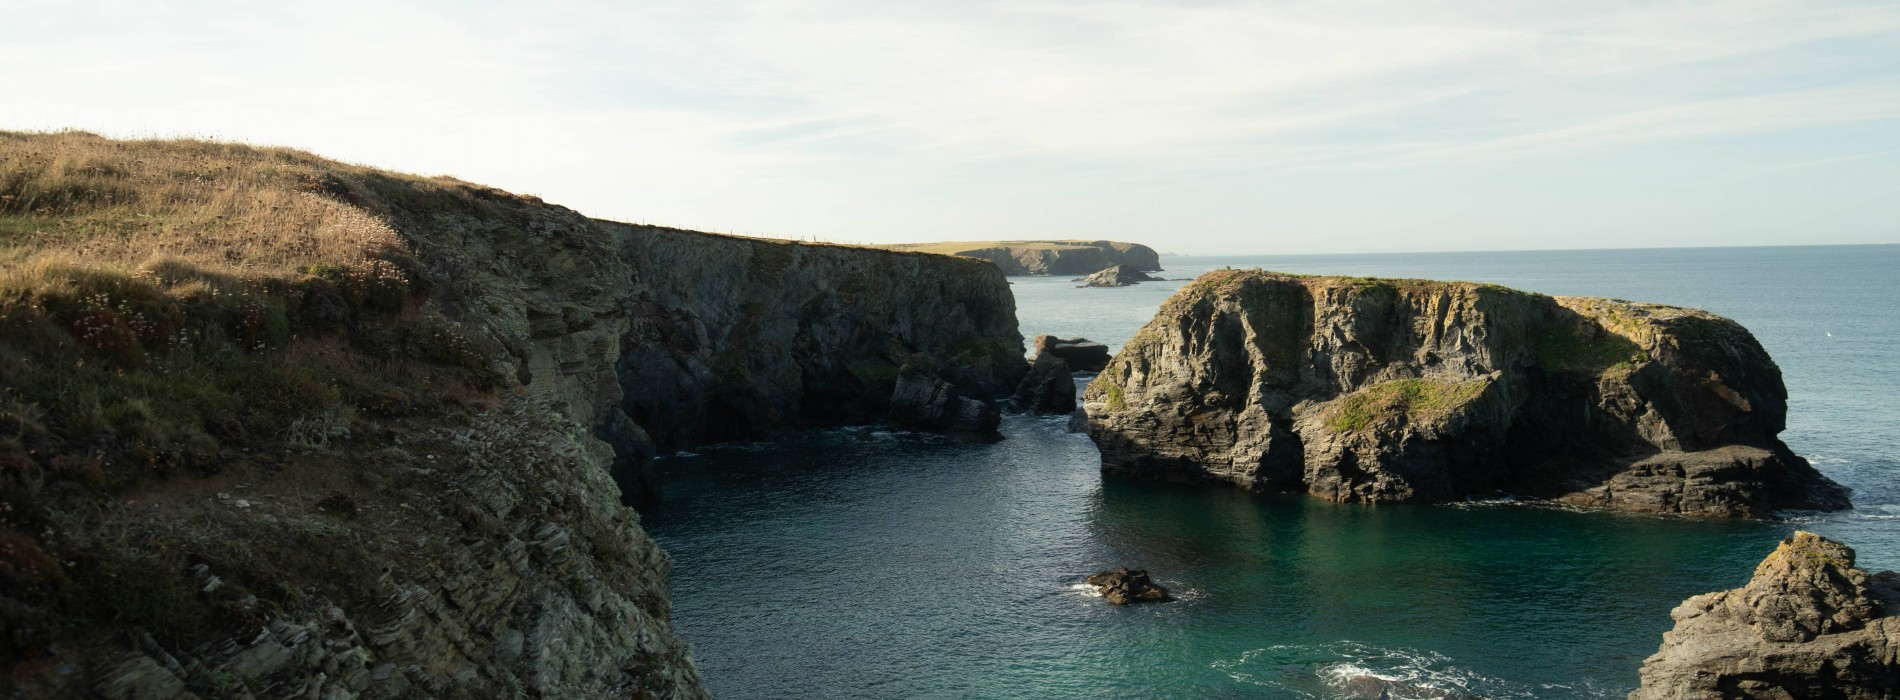 Clifftop Coastline - Cornish Coastal Challenge